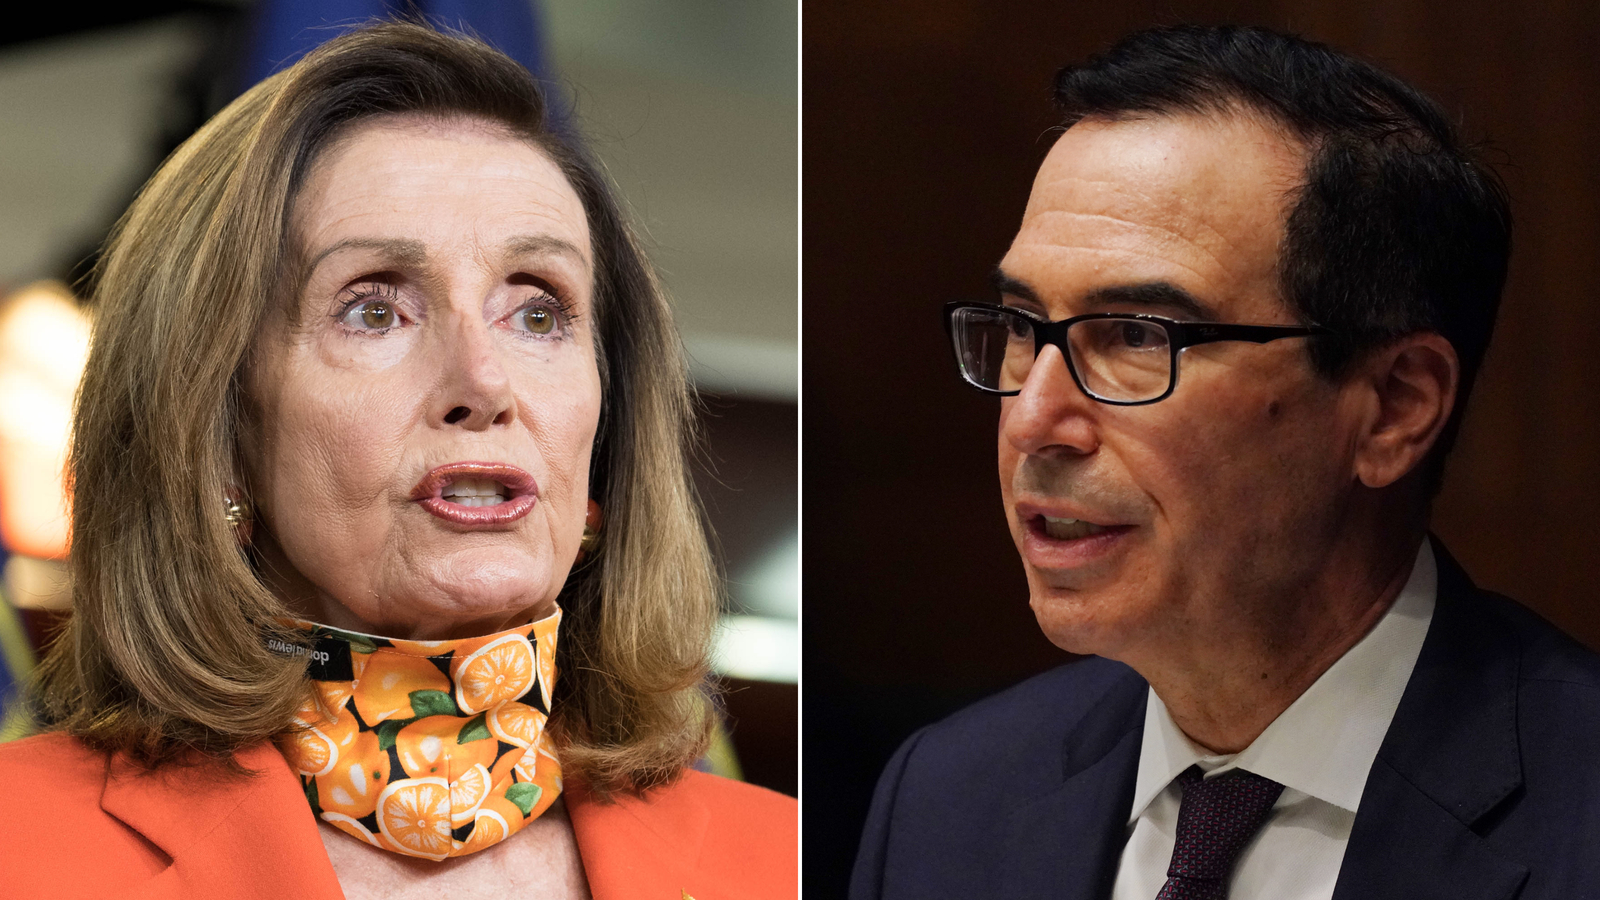 House Speaker Nancy Pelosi and Treasury Secretary Steven Mnuchin